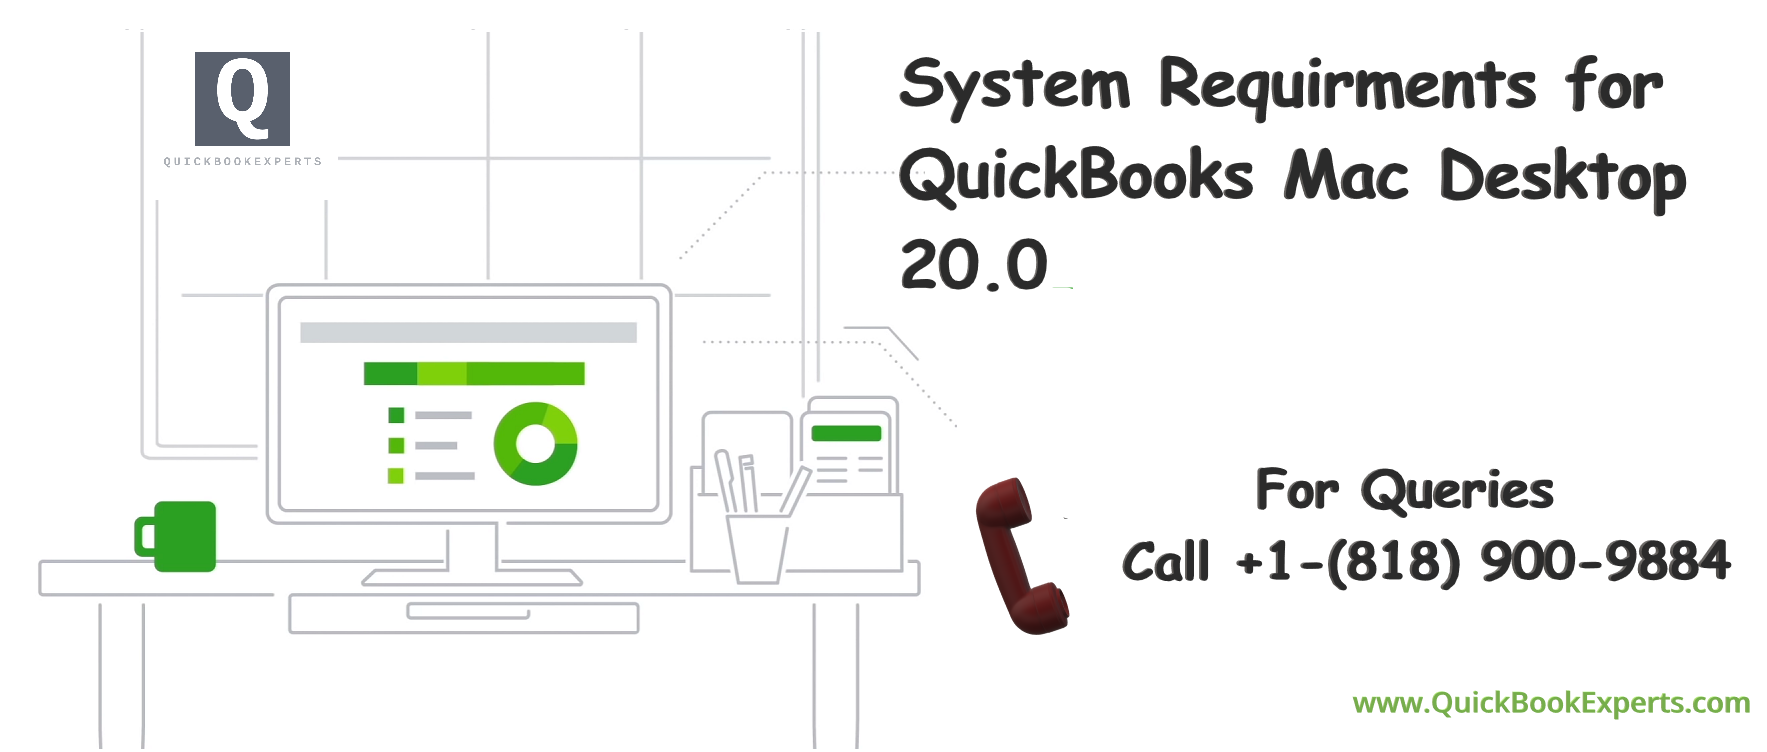 System Requirments for QuickBooks Desktop Mac mojave